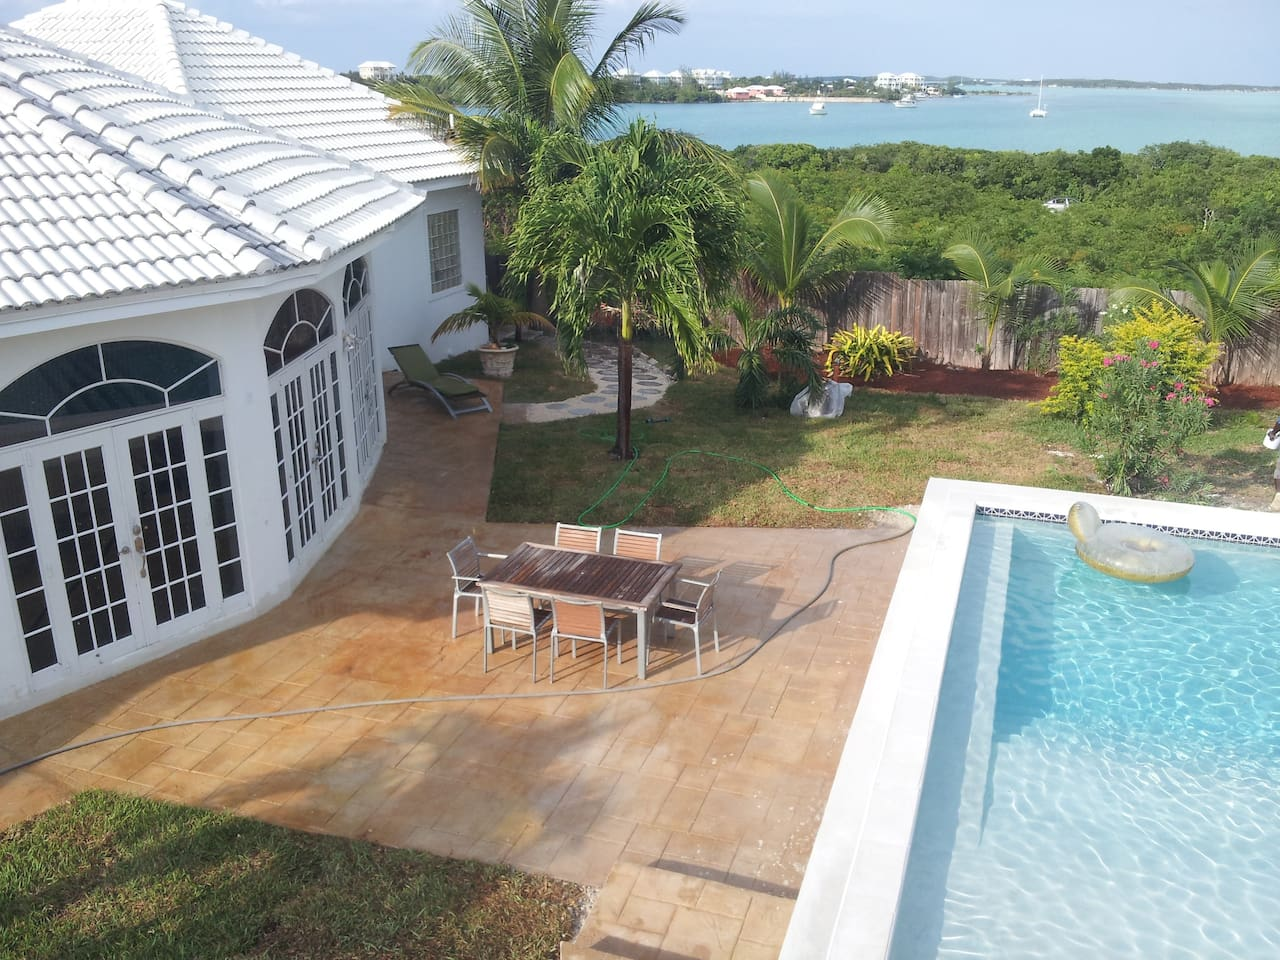 2015 new finish - new pool, lookout Gazebo, patios, and more!